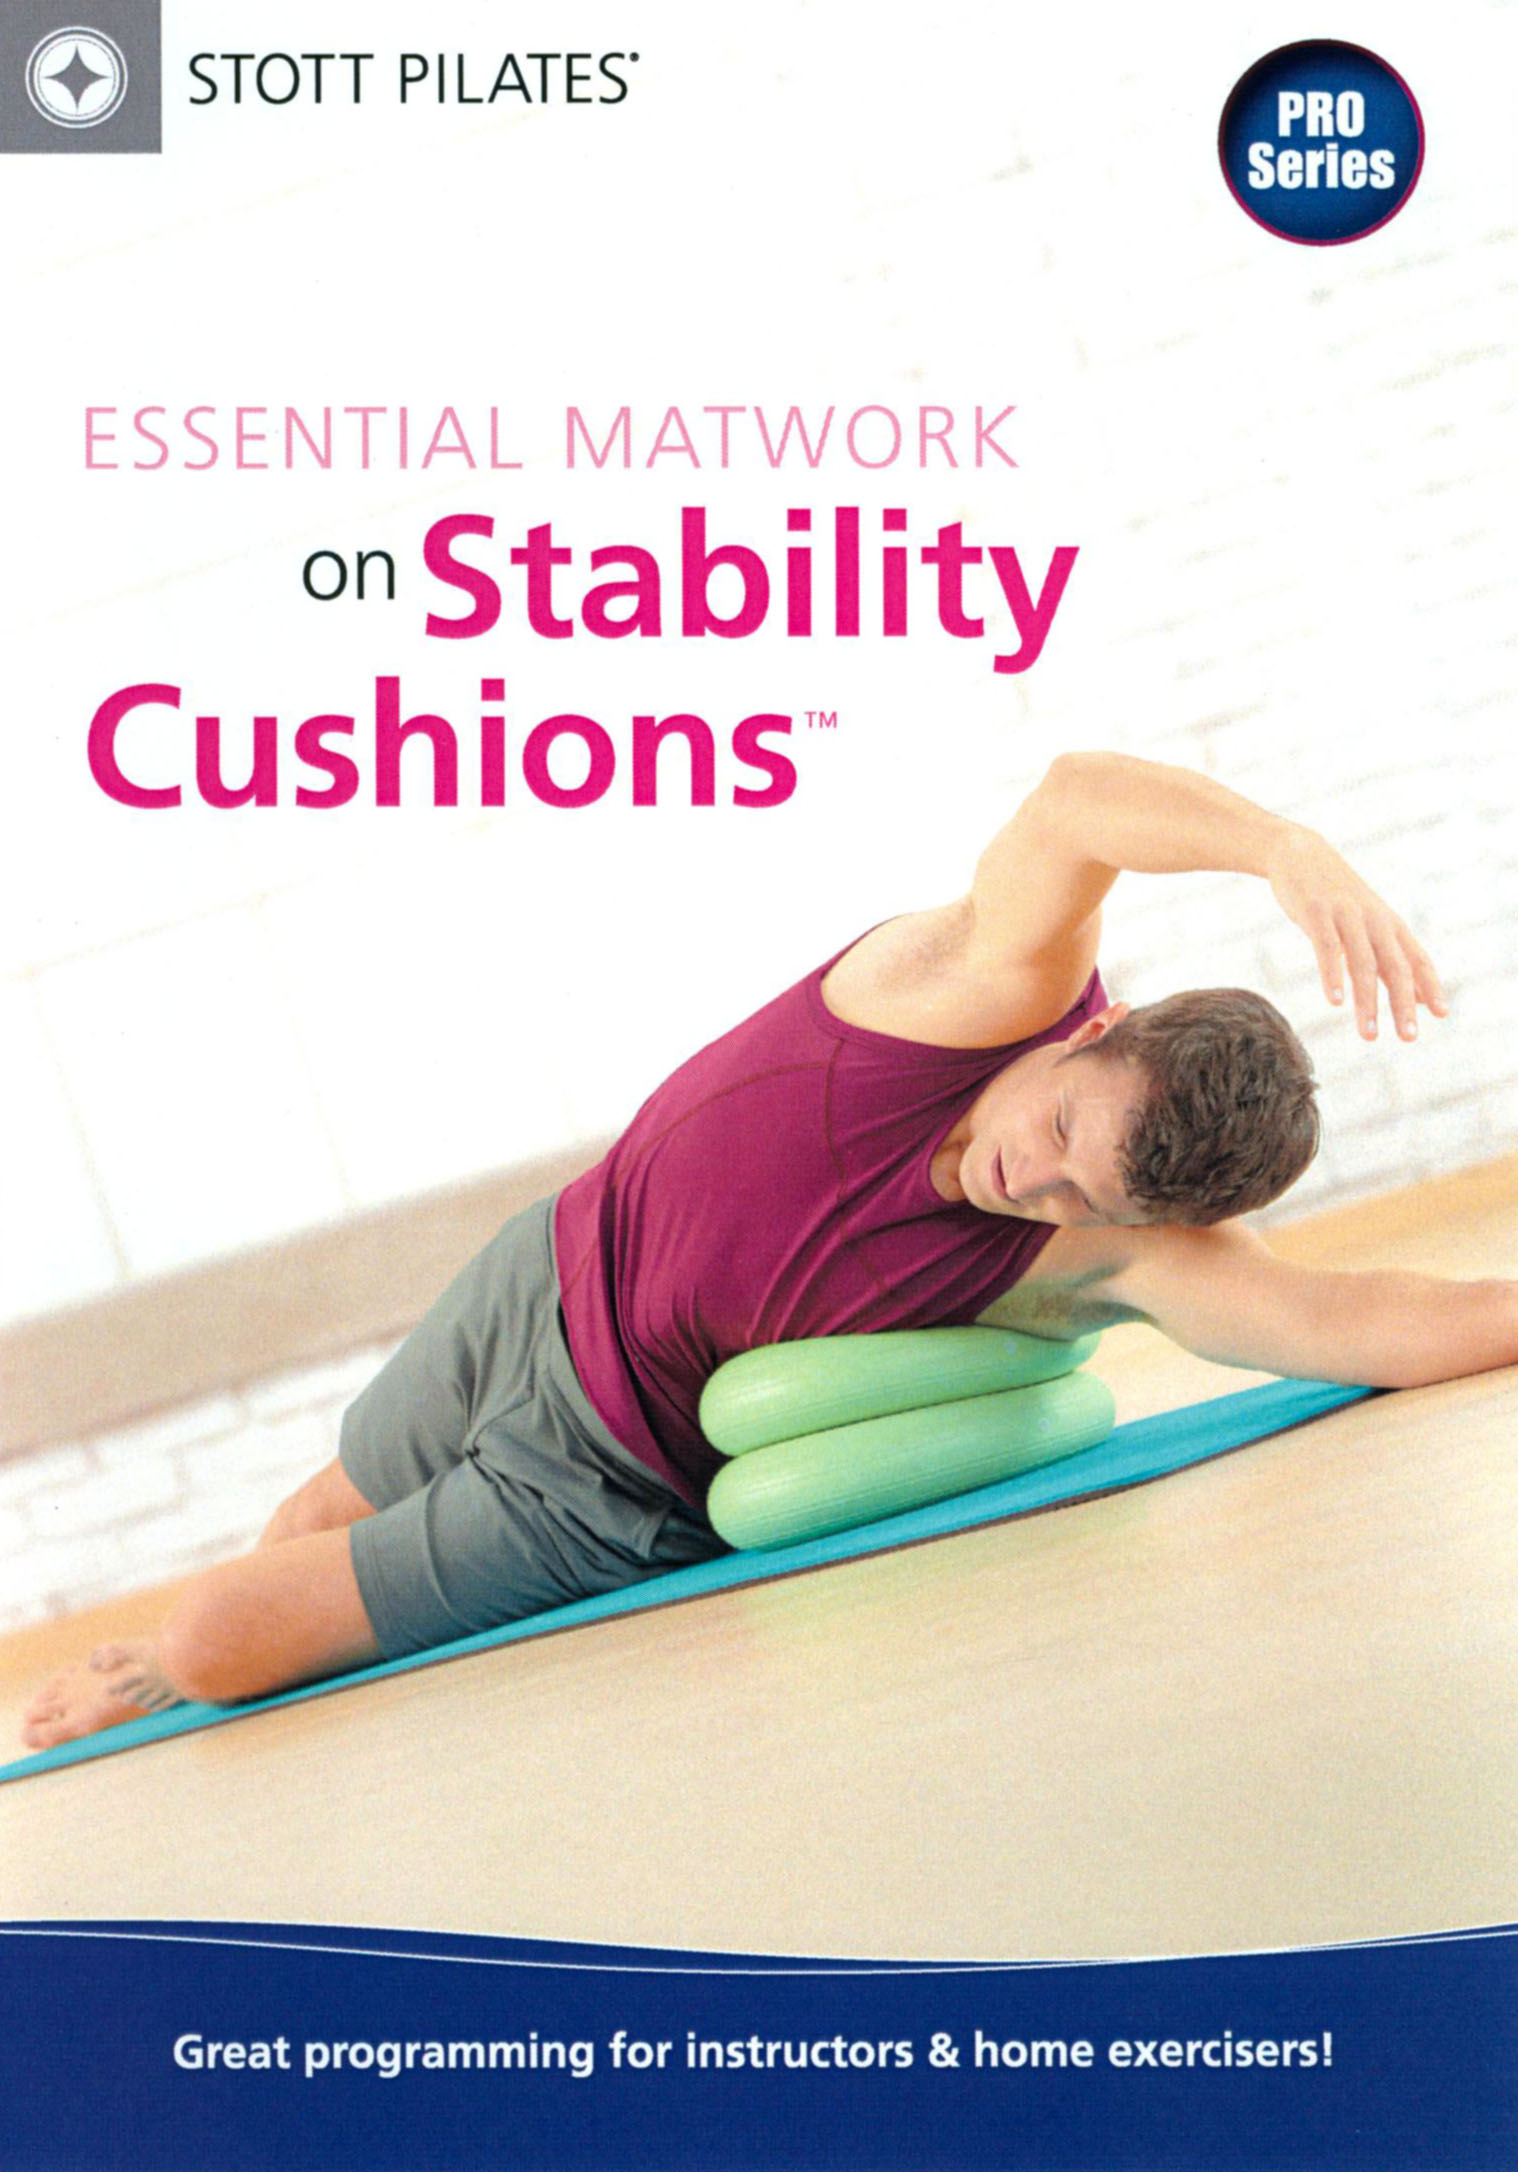 Stott Pilates: Essential Matwork on Stability Cushions